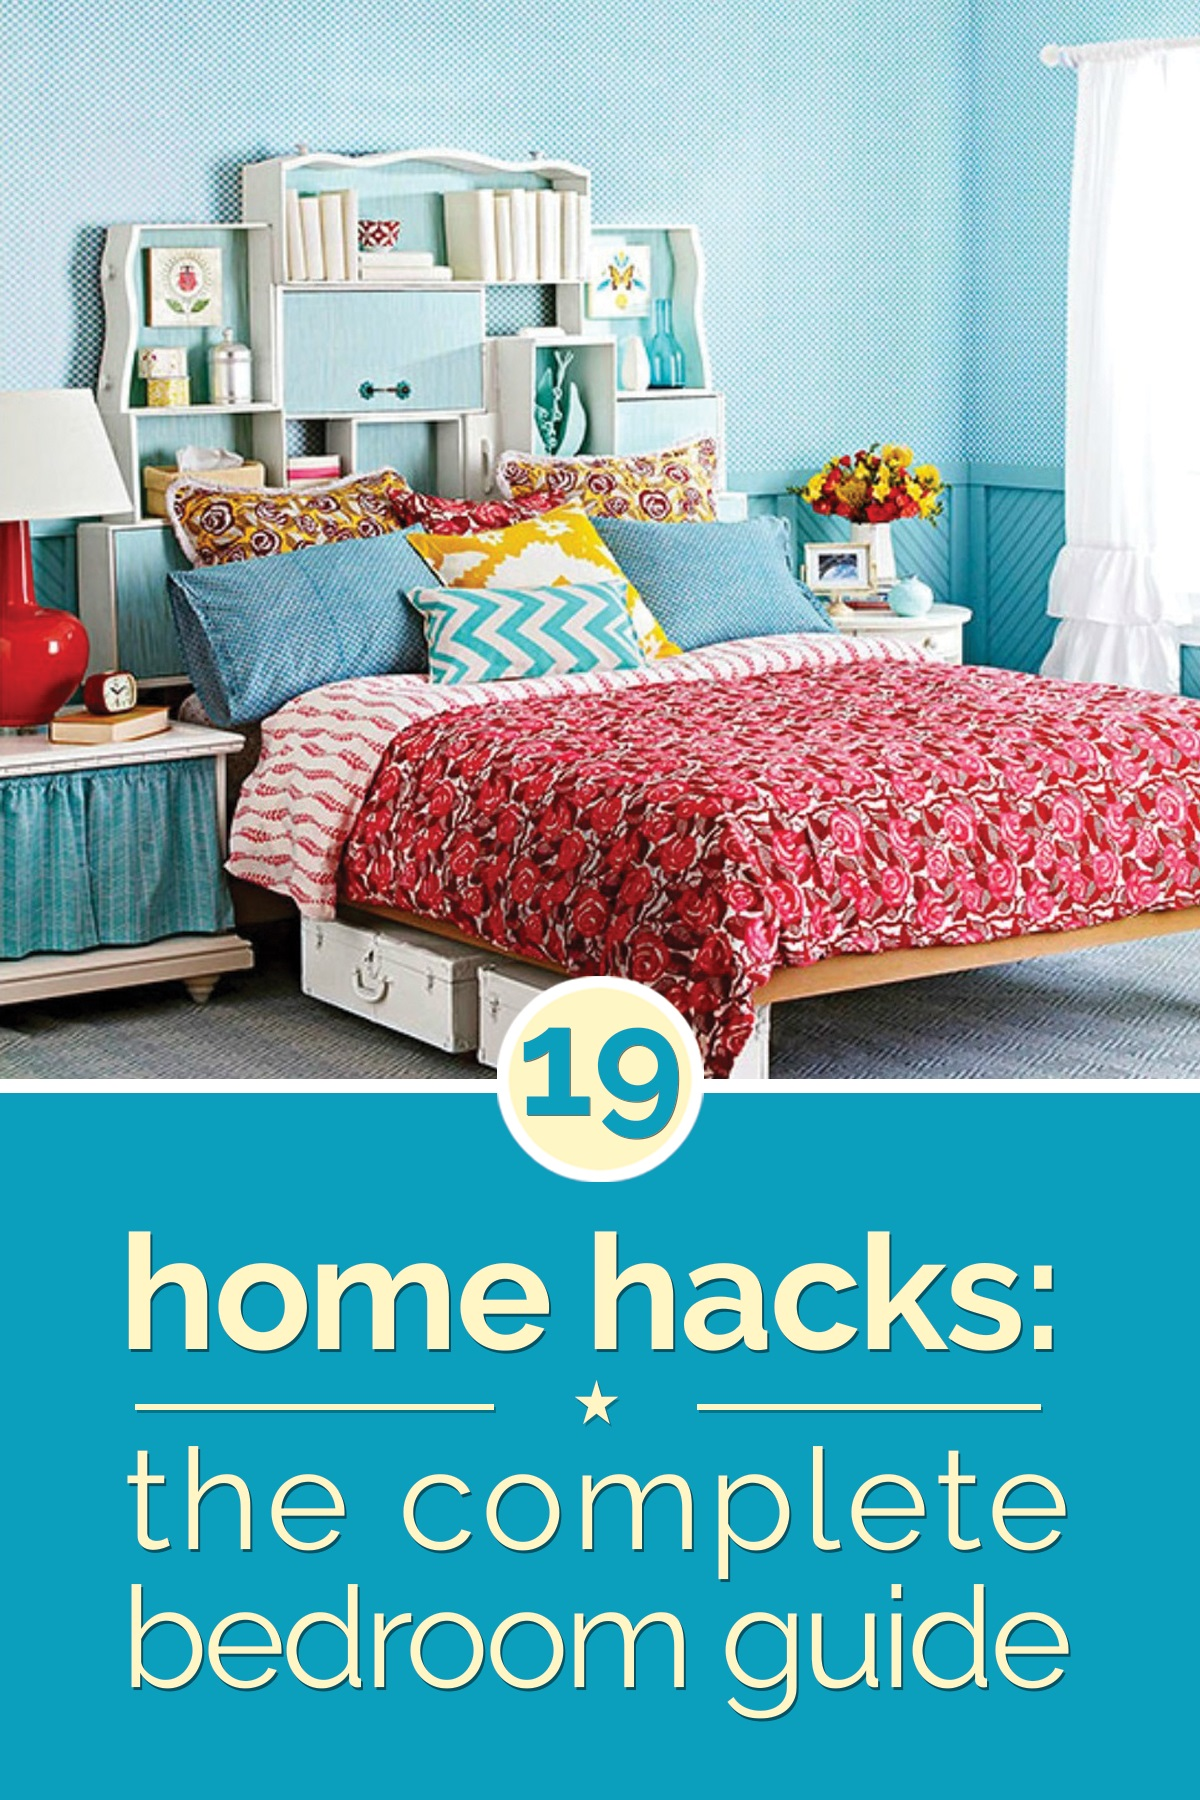 diy-home-hacks-bedroom XmOpXR